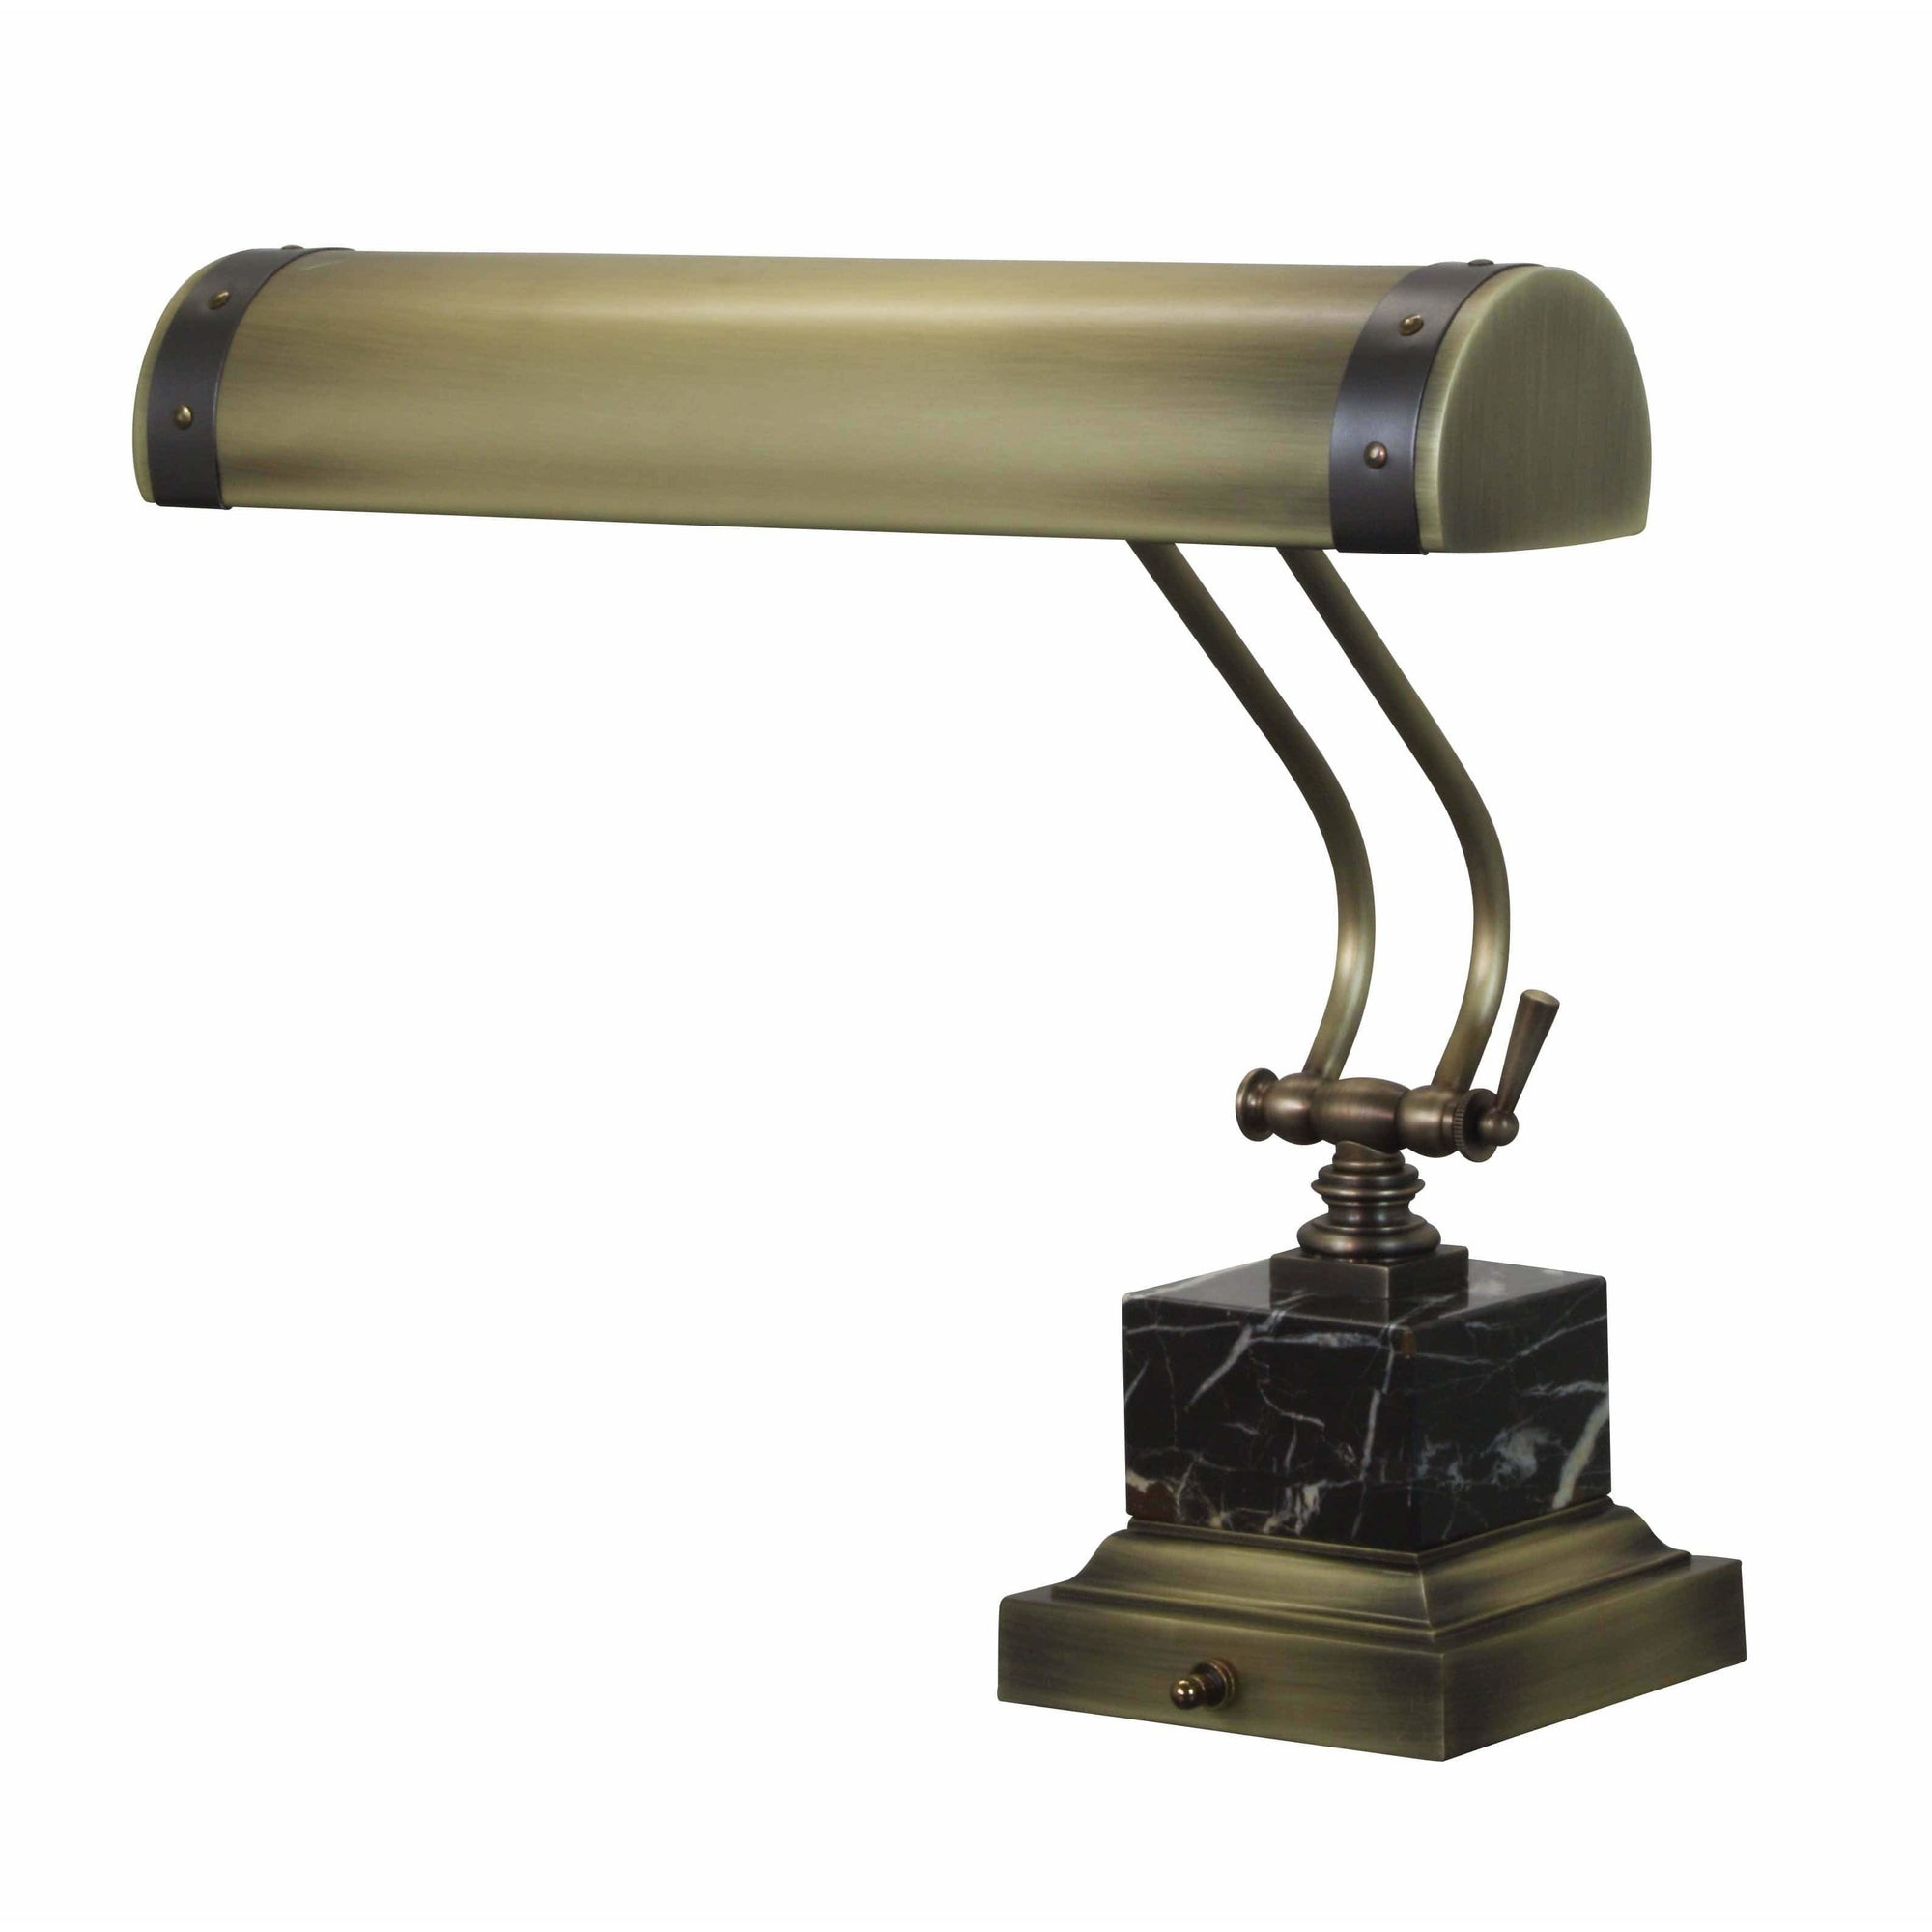 House Of Troy Desk Lamps Steamer Piano/Desk Lamp by House Of Troy P14-290-ABMB